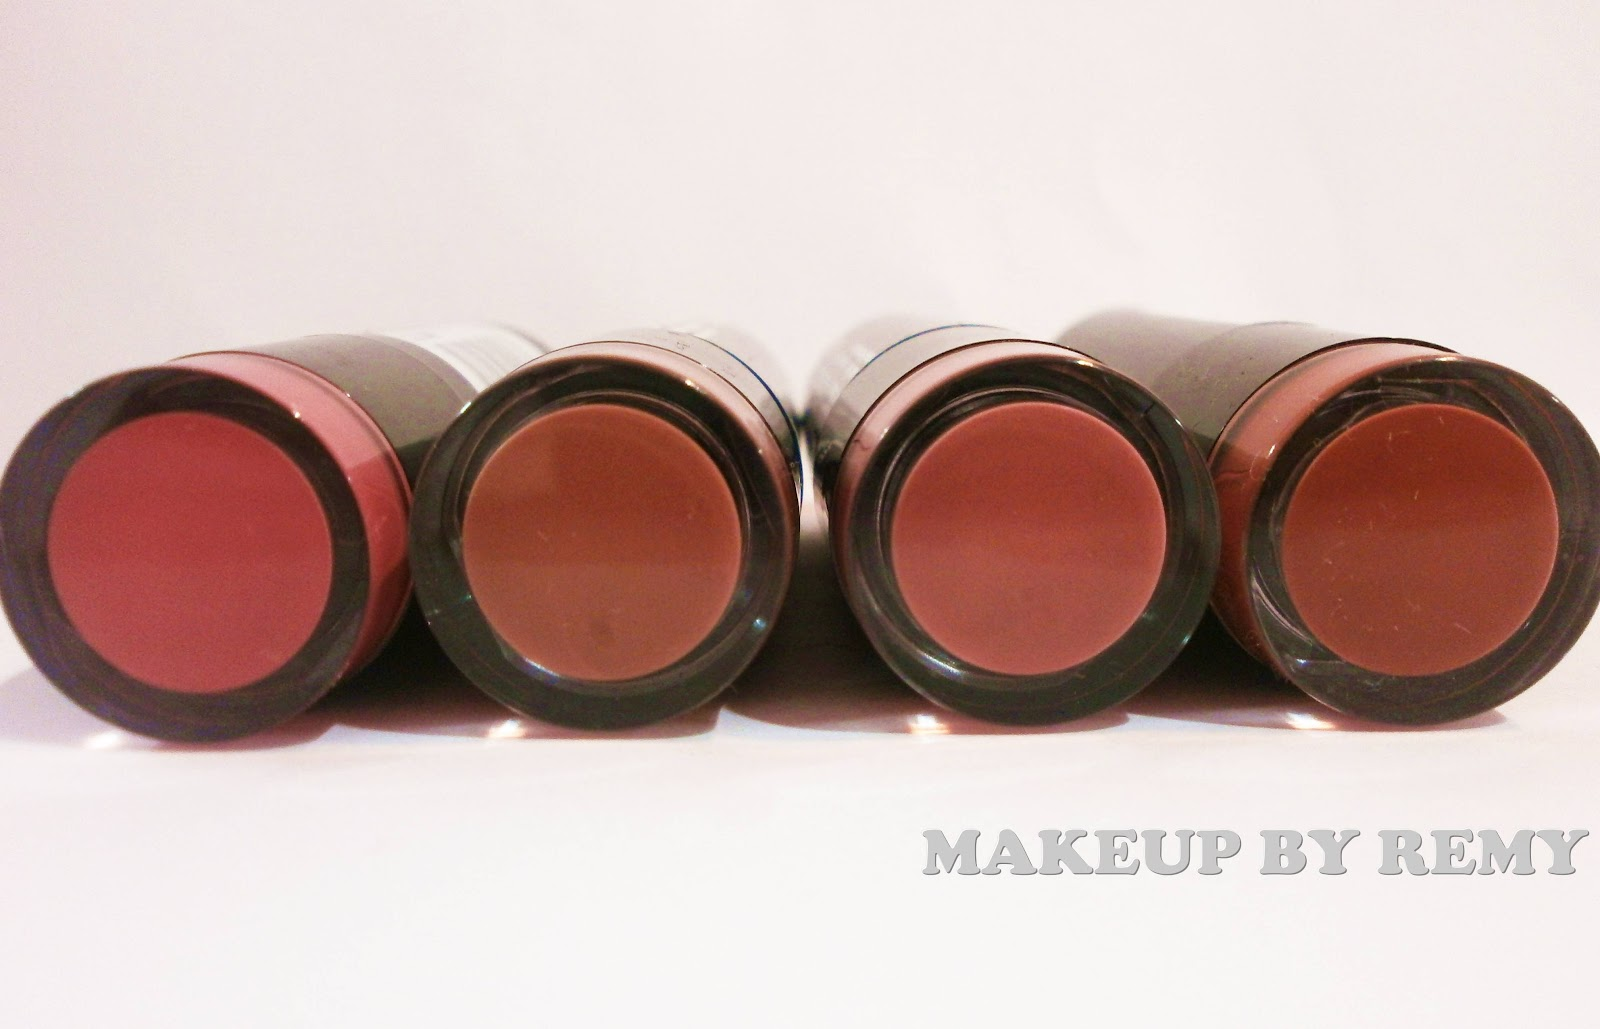 Makeup By Remy: Nyx Round Lipsticks-Review and Swatches